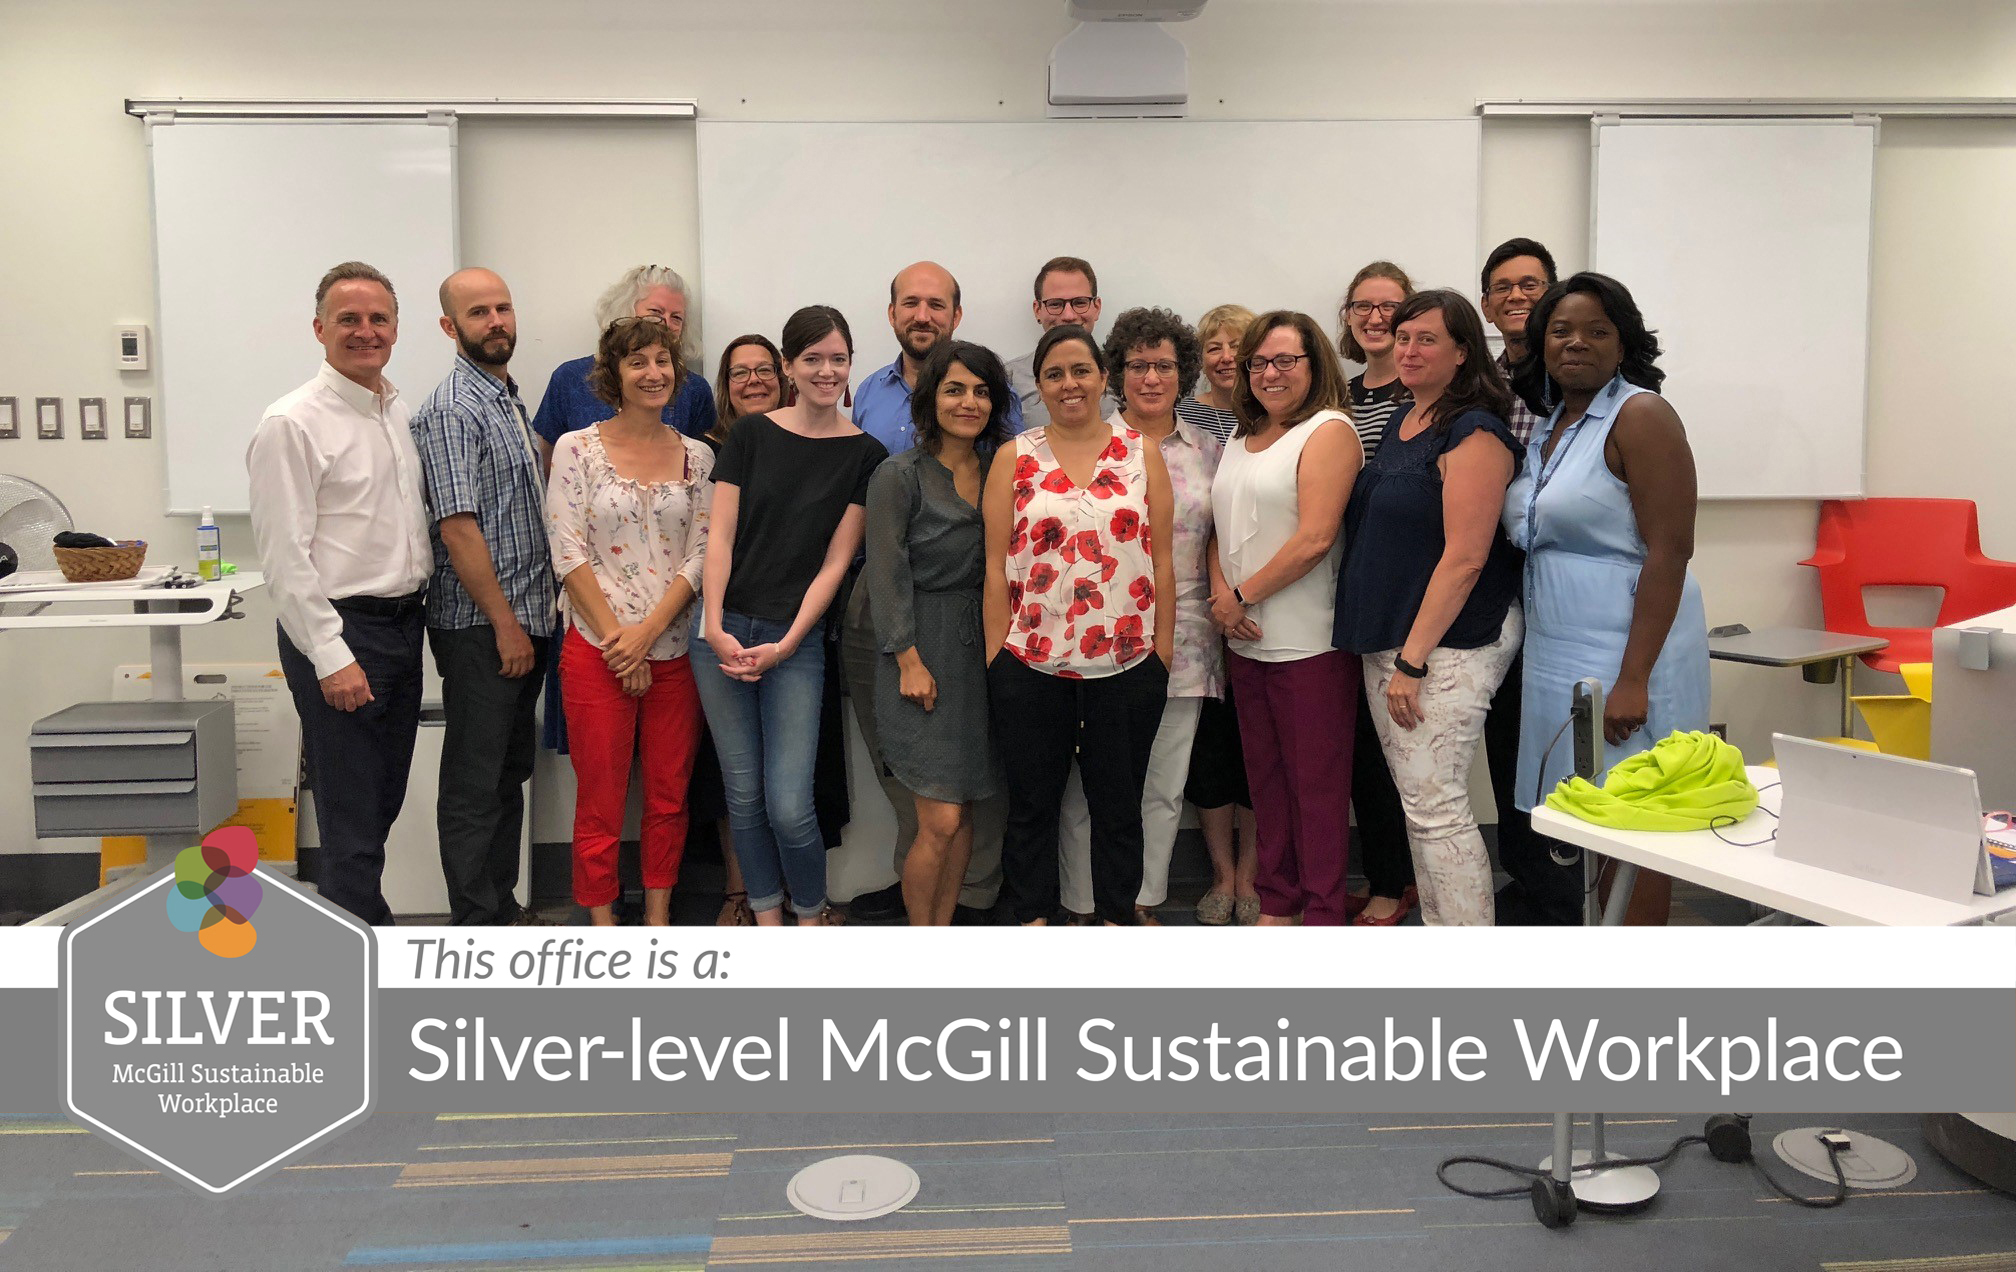 TLS Staff Silver-level McGill Sustainable Workplace